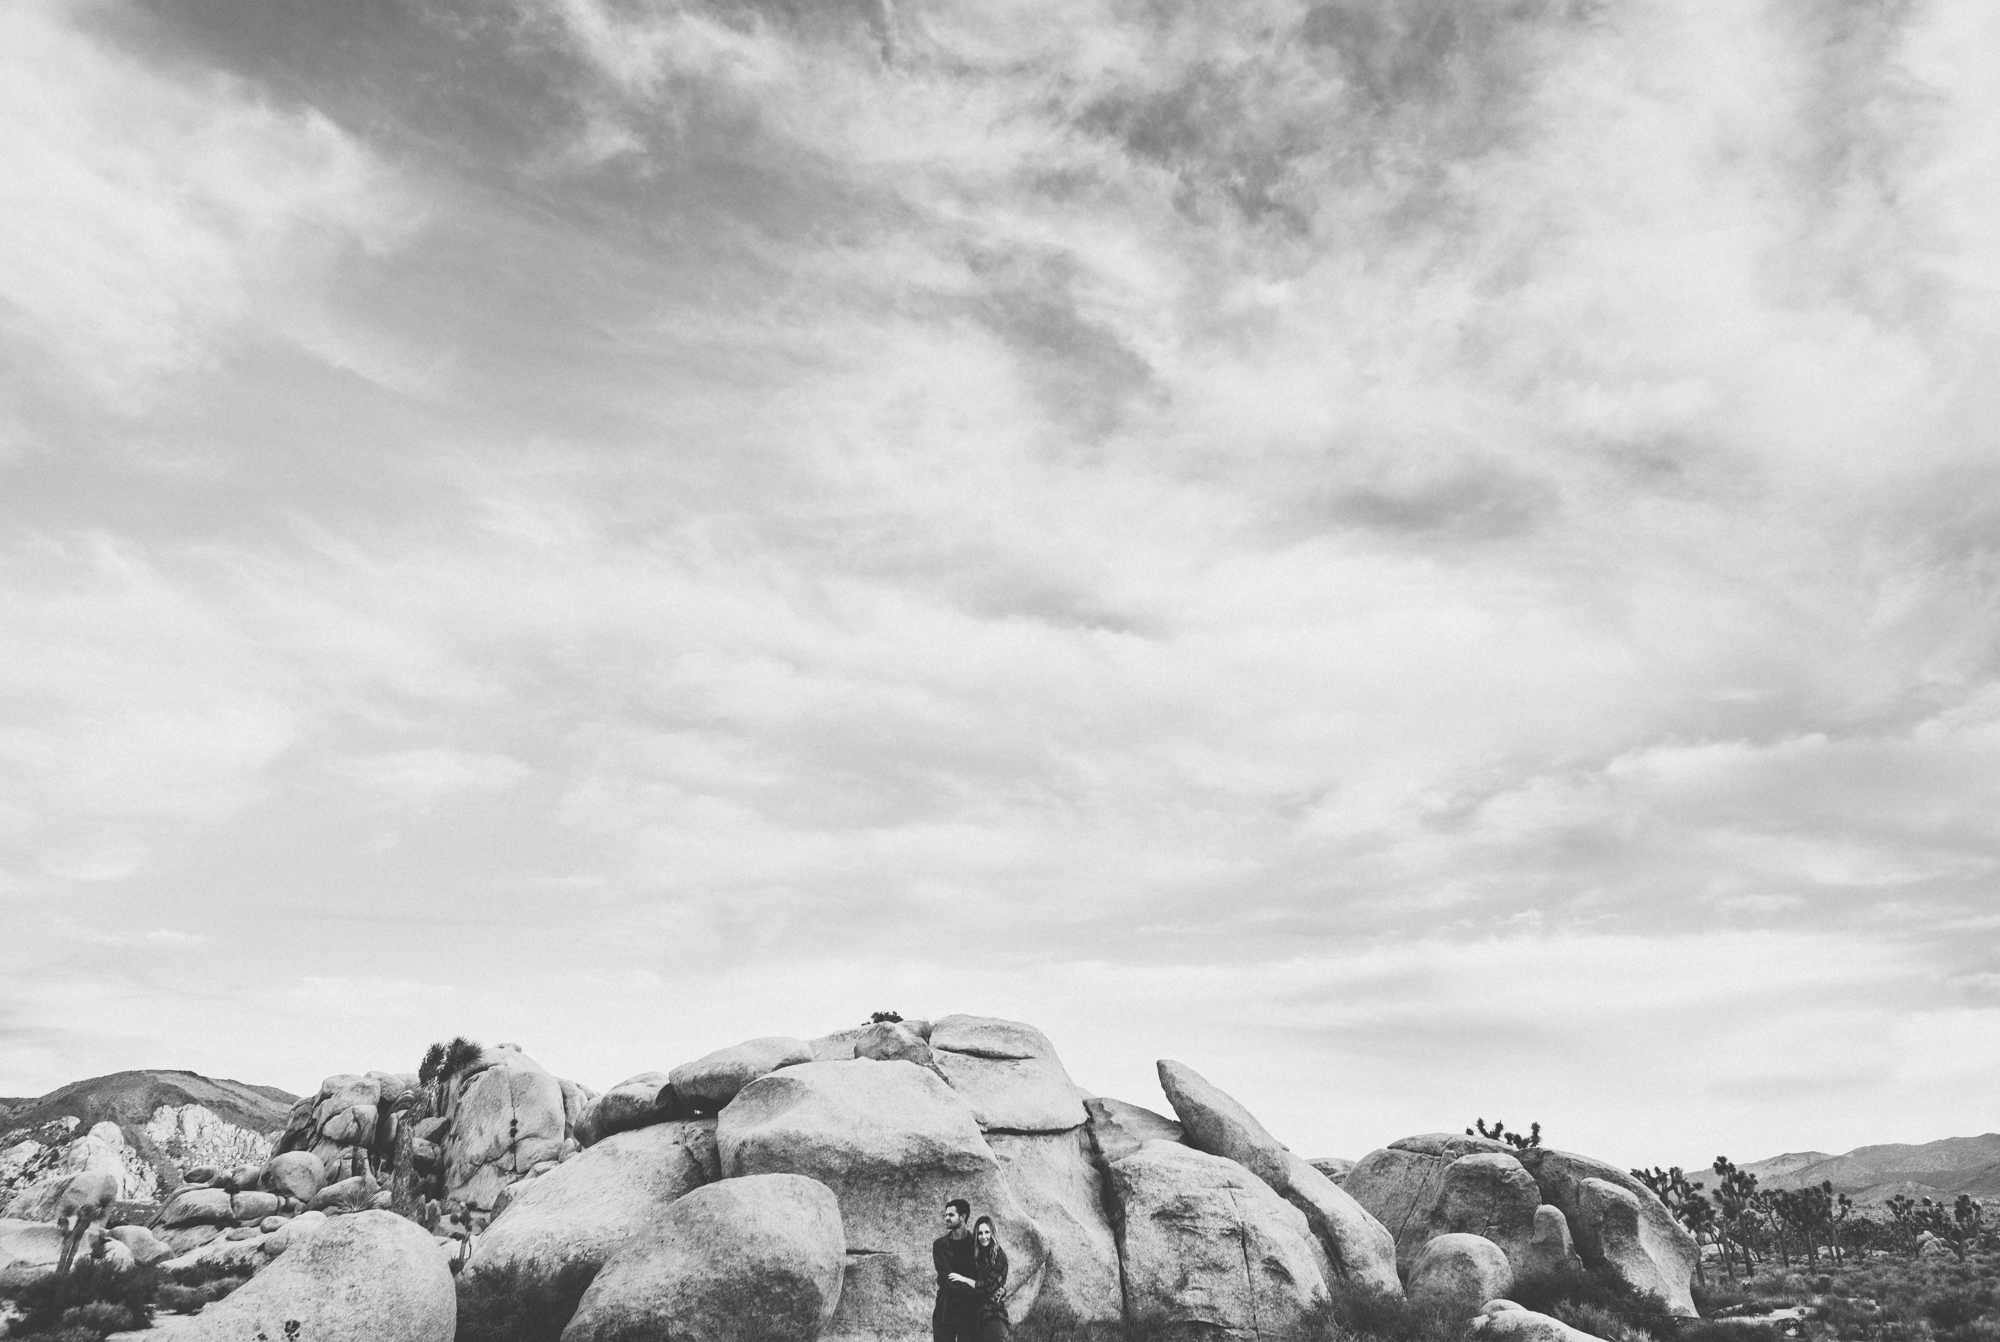 ©Isaiah & Taylor Photography - Destination Wedding Photographers - Joshua Tree, California Adventure Engagement-015.jpg